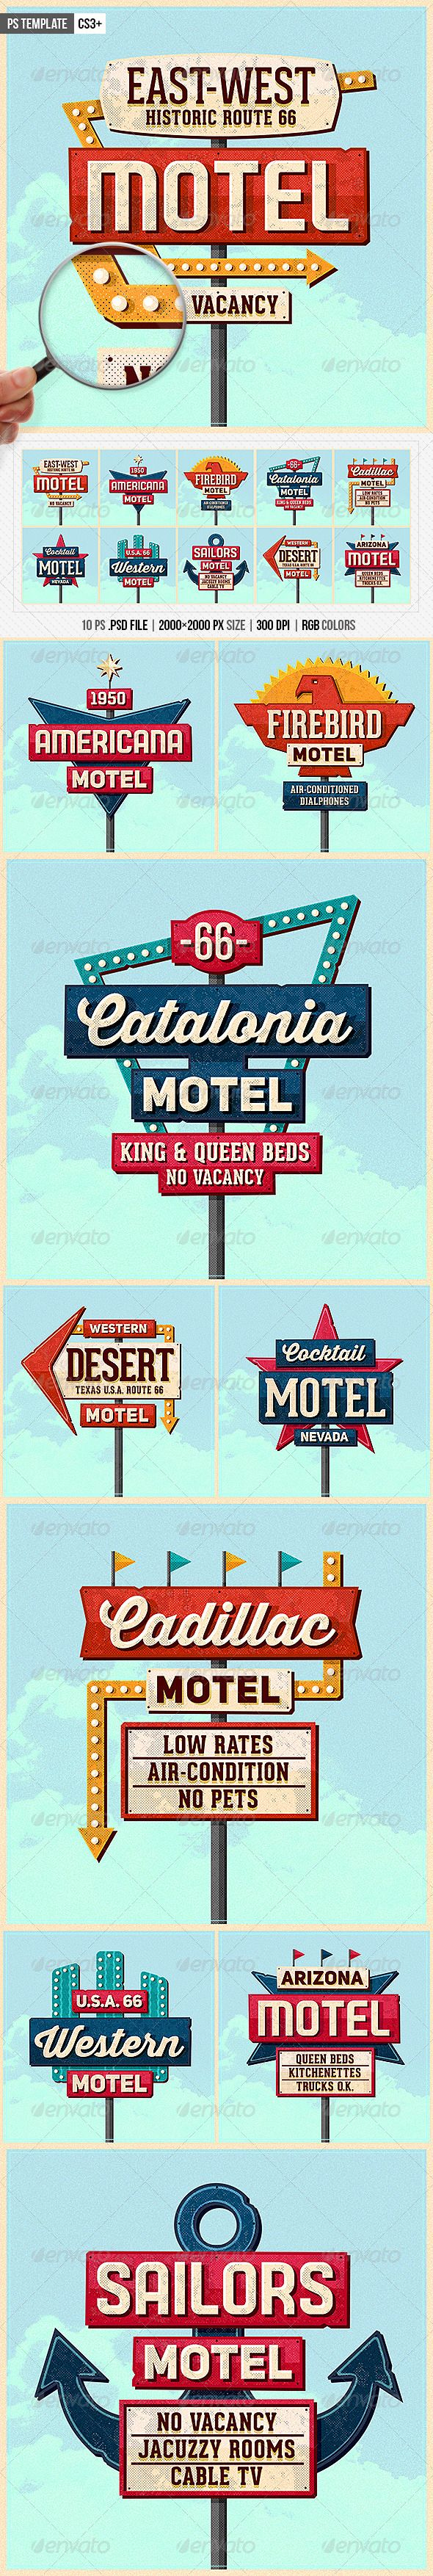 Vintage Motel Sign Pack Motel Sign Pack – Ps Template 	50s, 60s, adam aczkov, america, cactus, classic, customizable, desert, editable, grunge, highway, hotel, motel, motel sign, old, oldies, retro, retro sign, road, rock, route 66, sign, signage, signs, texture, unique, vacancy, vintage, vintage sign, worn  http://graphicriver.net/item/vintage-motel-sign-pack/8676739?ref=creativetouch